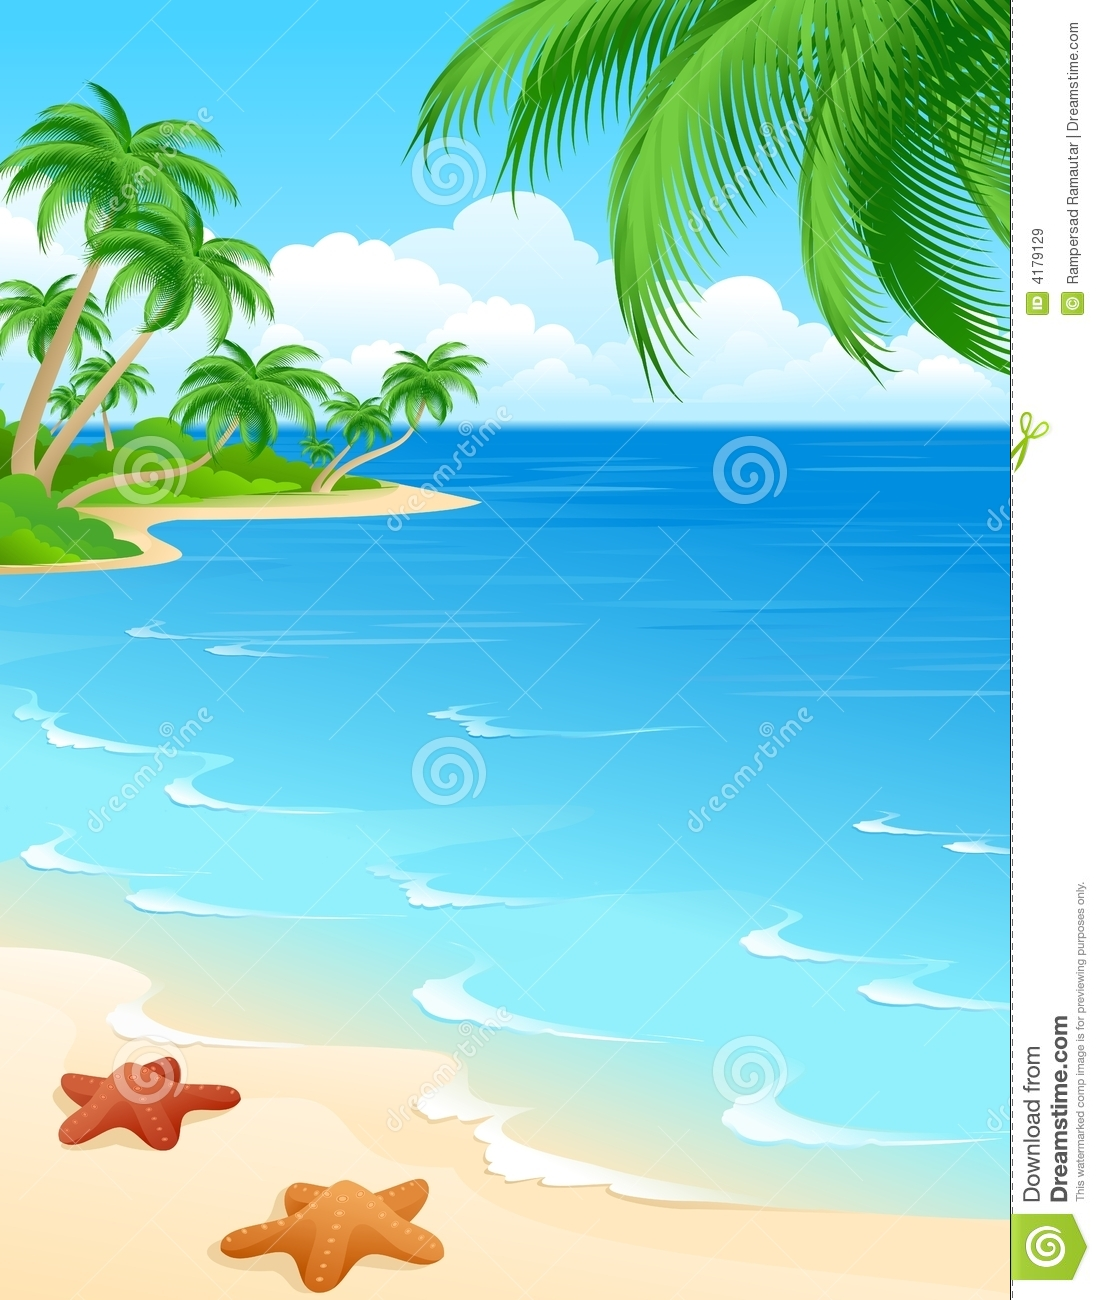 beach scene stock illustration illustration of peaceful 4179129 rh dreamstime com beach scene clipart black and white beach scene clip art free